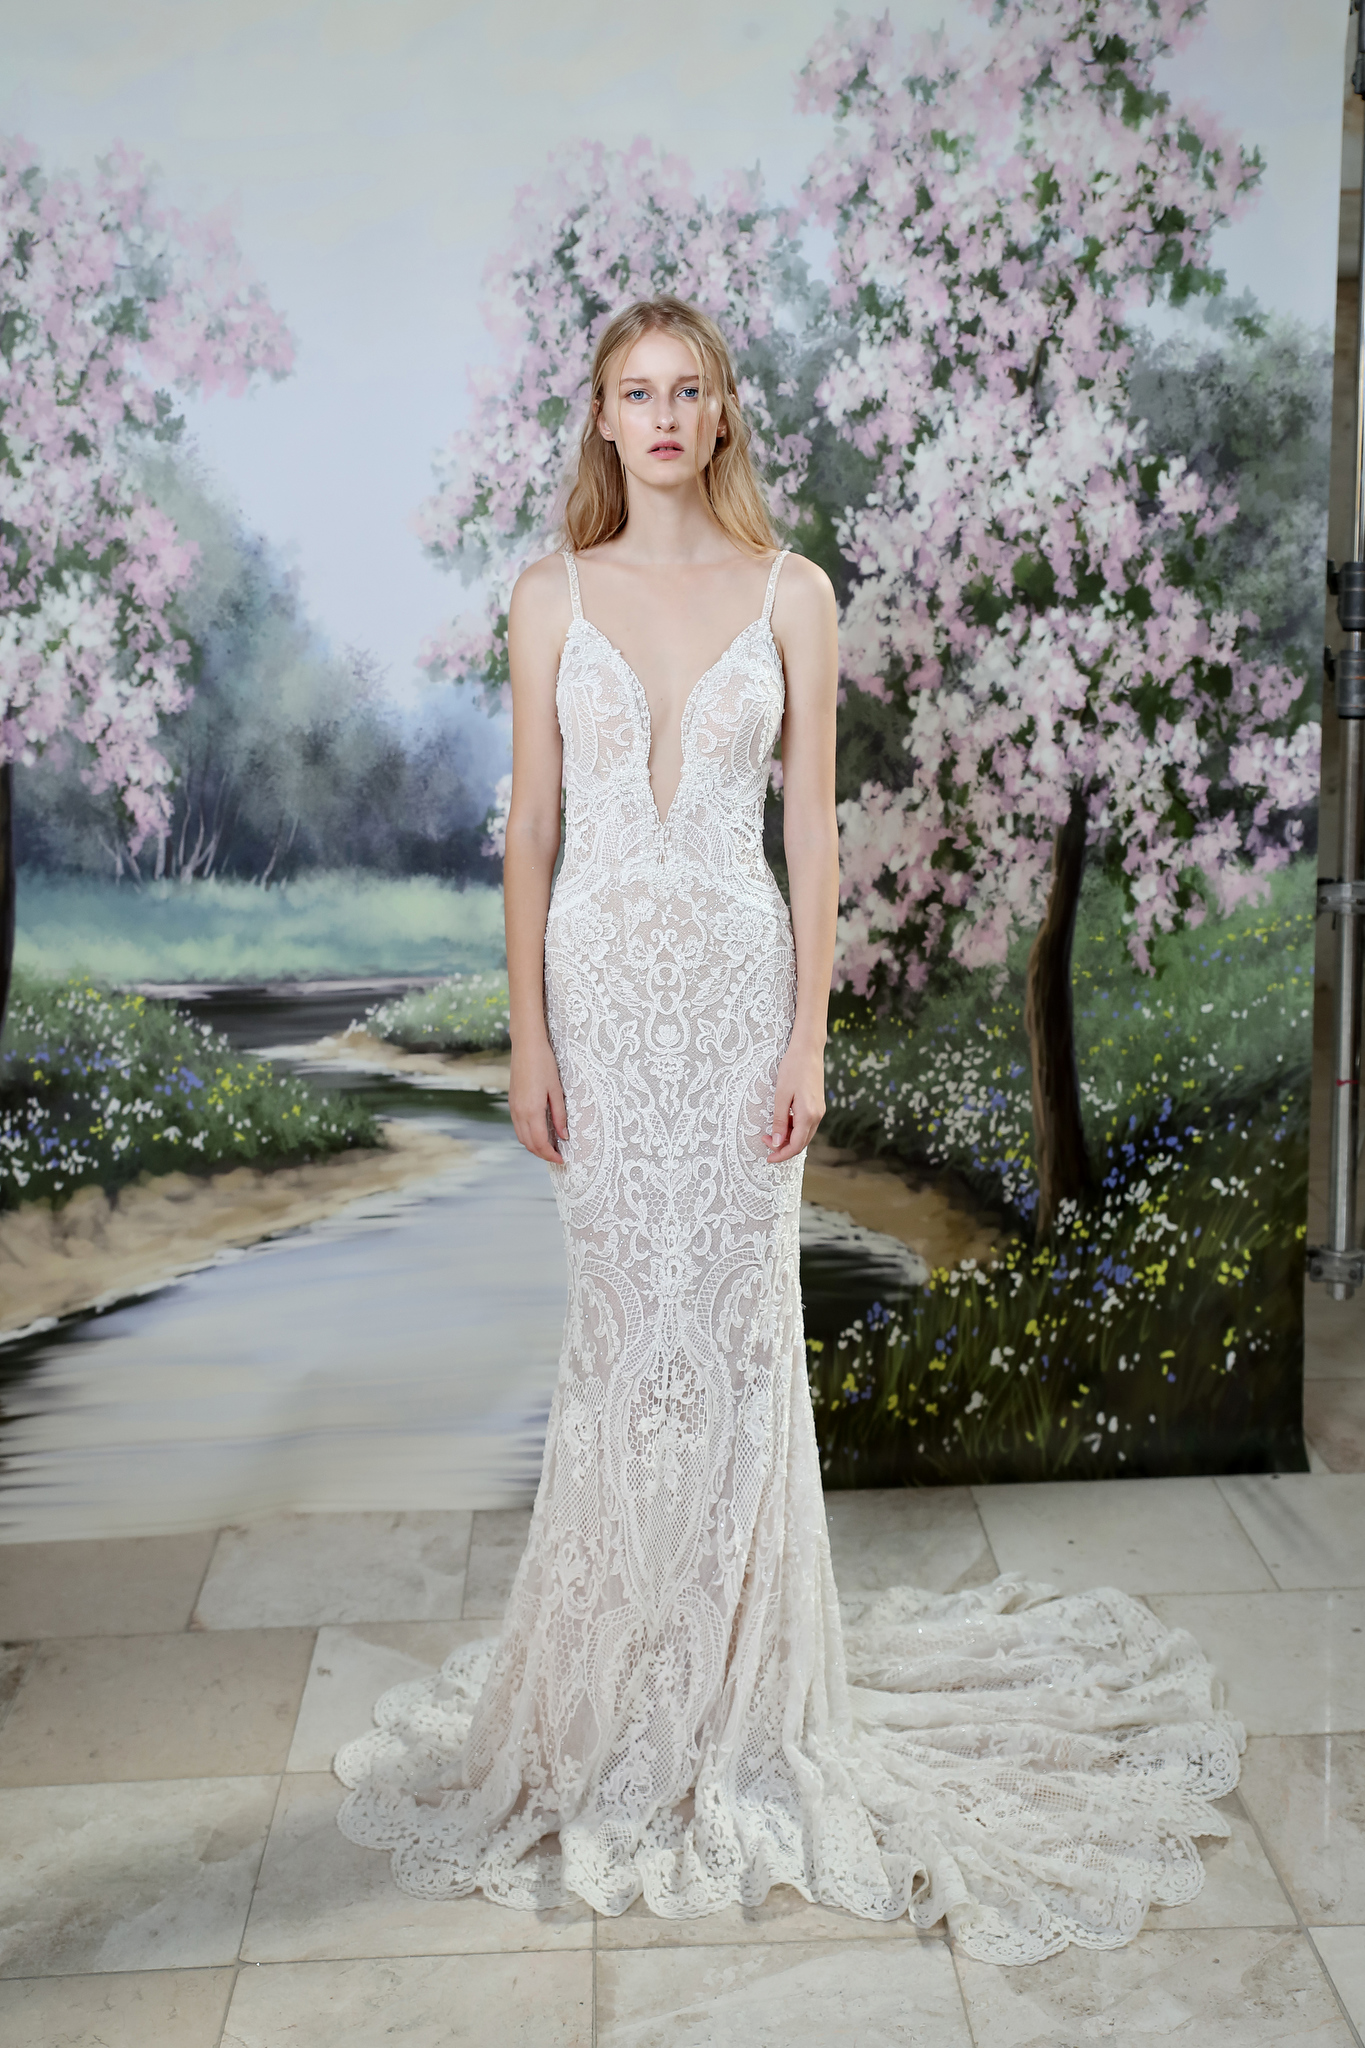 Gala by Galia Lahav Bridal Fall 2019